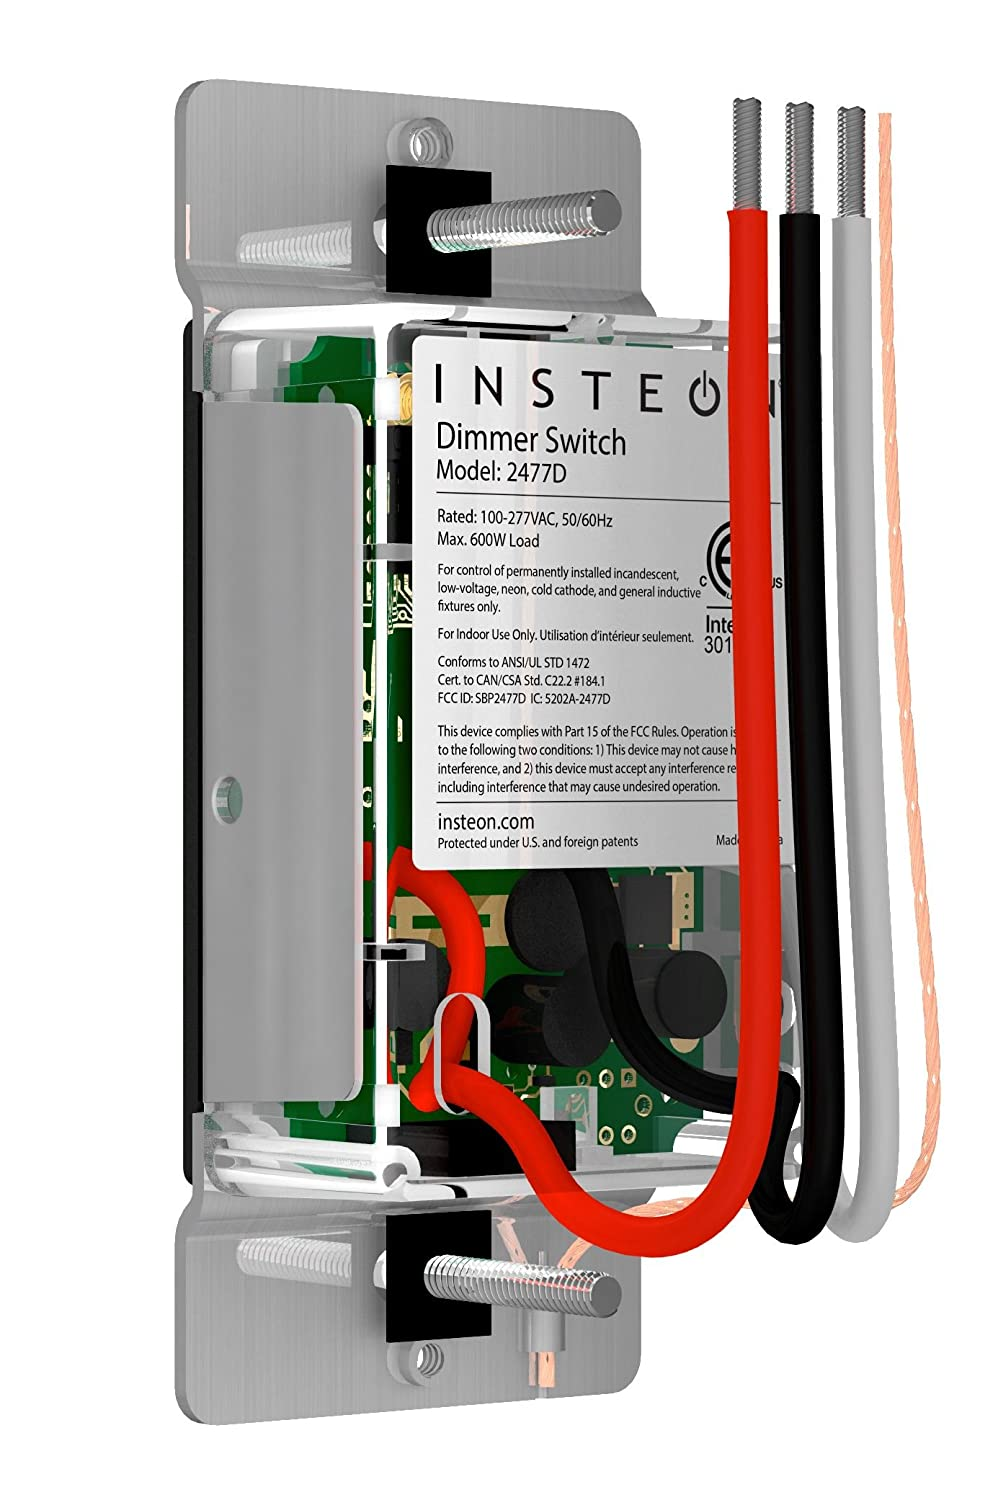 Insteon SwitchLinc Remote Control Dimmer, Dual-Band, Works with Alexa -  Wall Dimmer Switches - Amazon.com